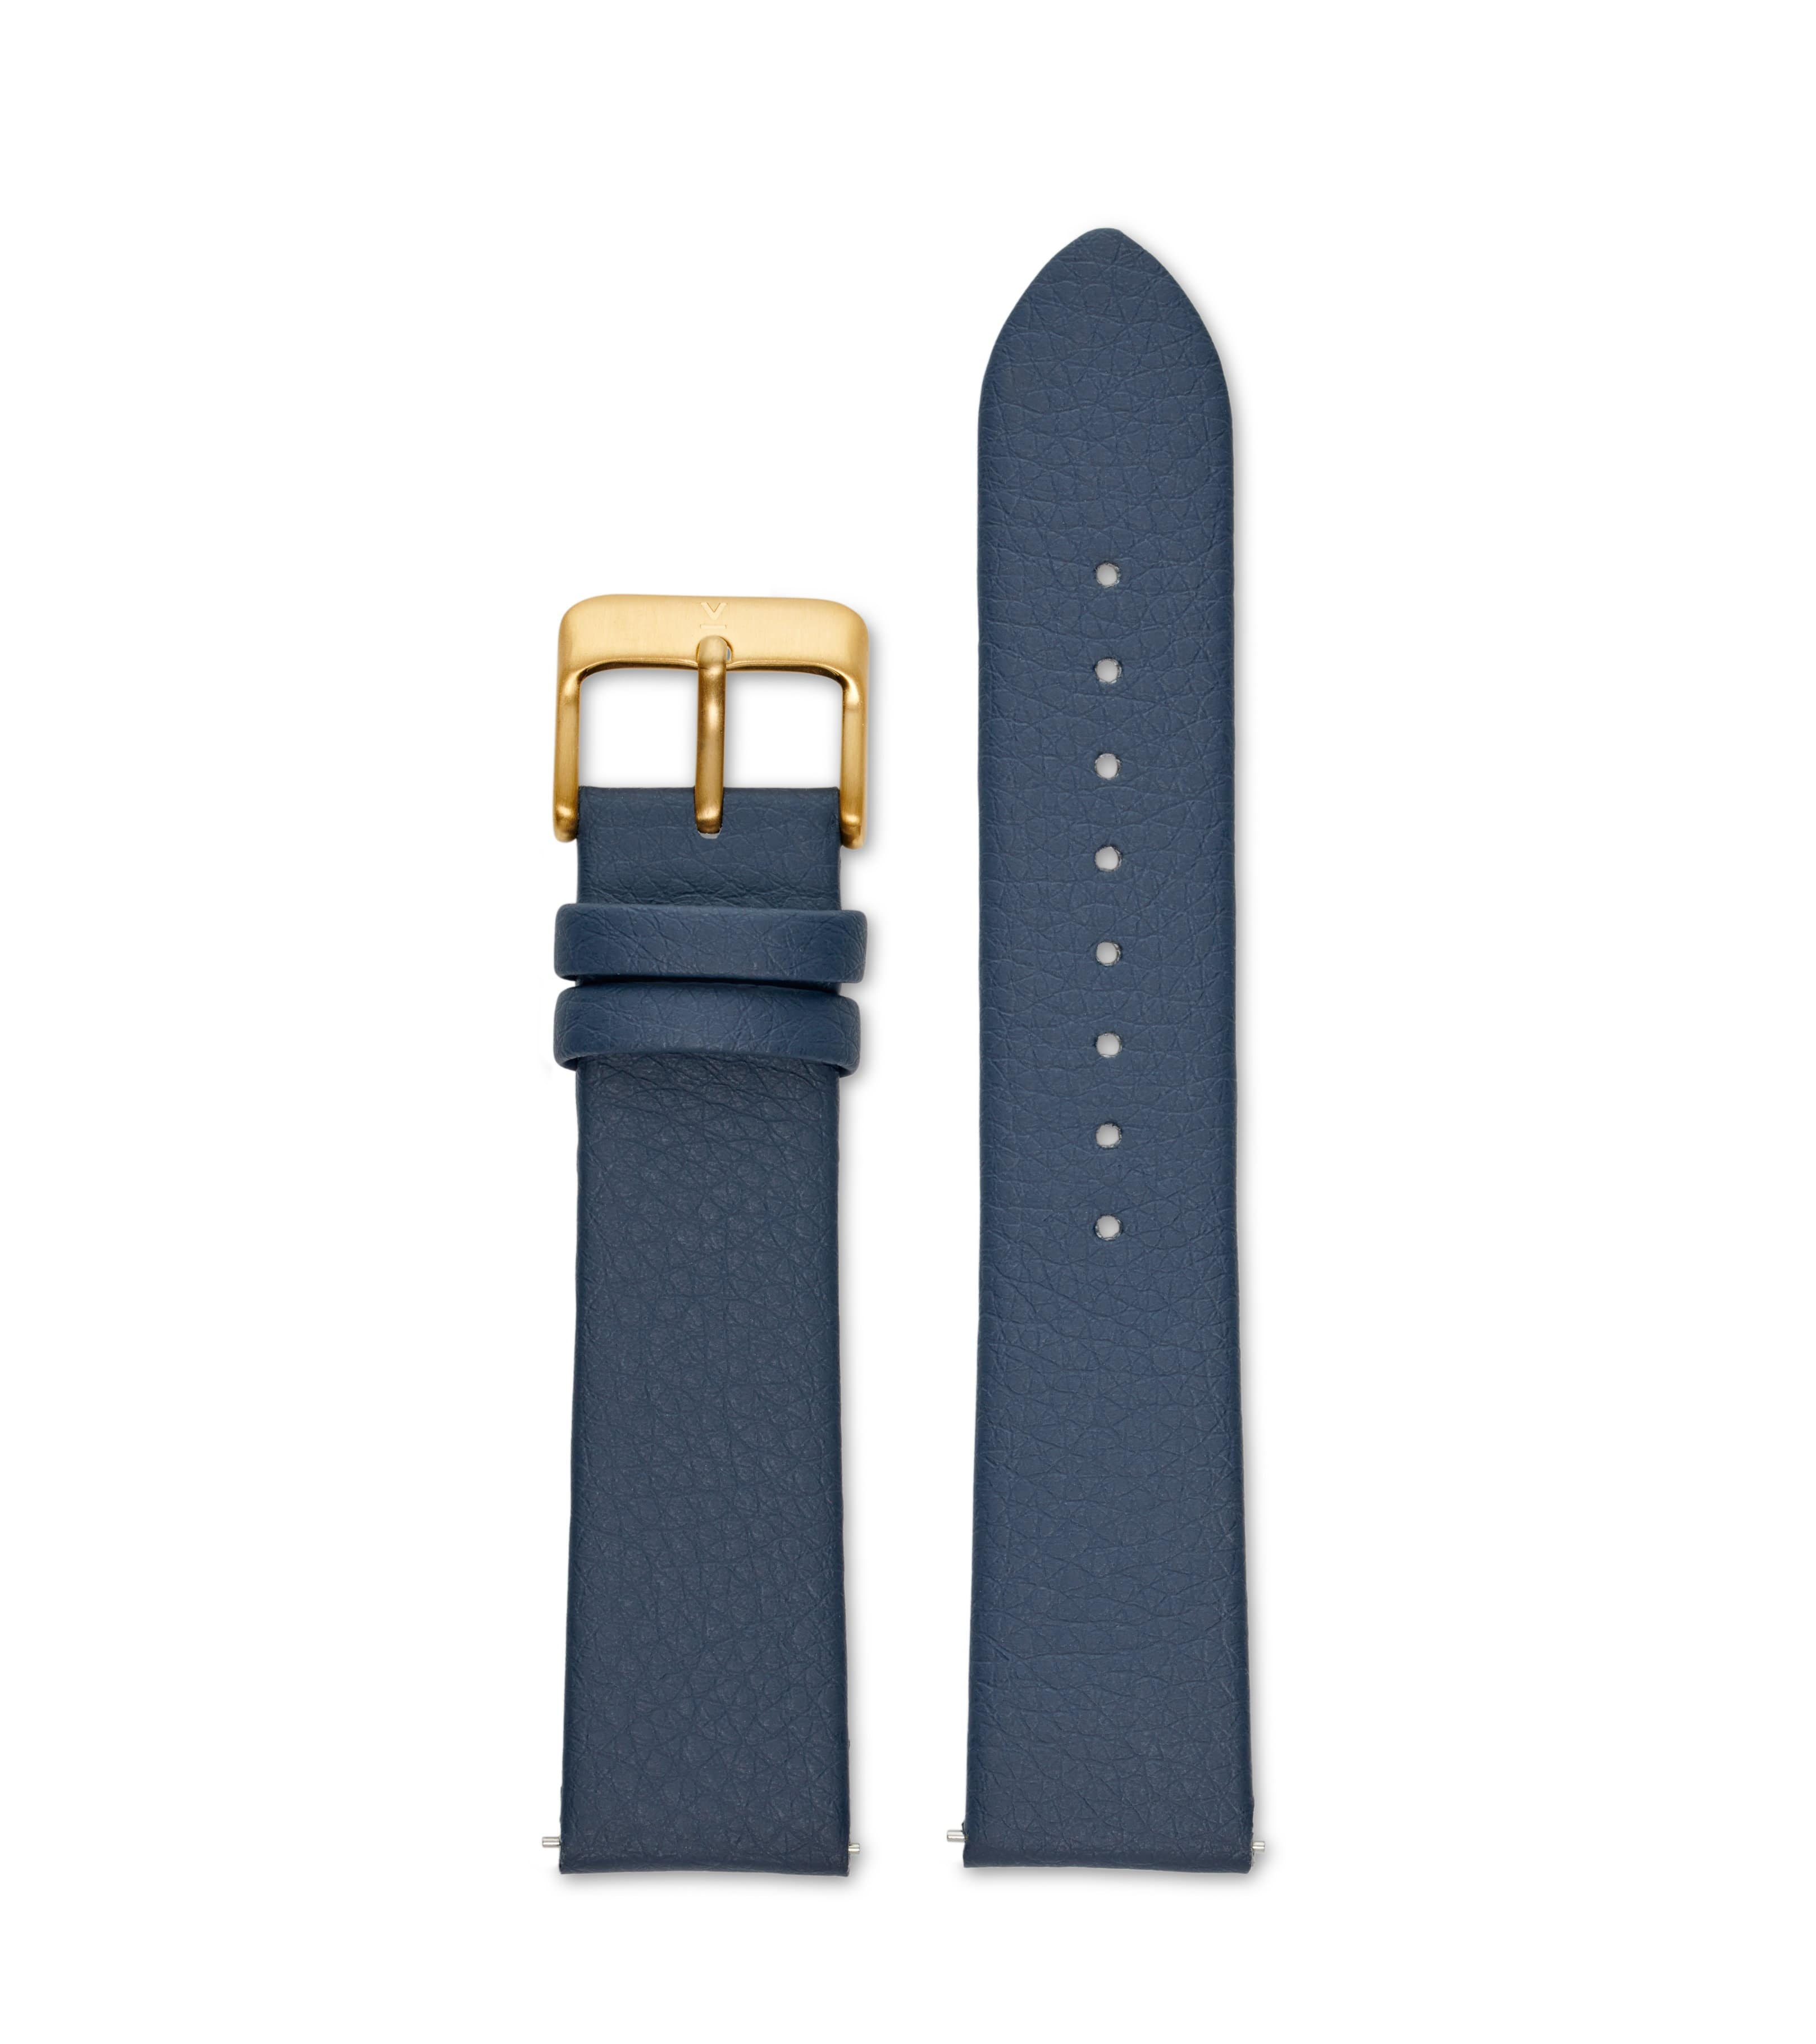 NAVY WITH BRUSHED GOLD BUCKLE   20MM from Votch